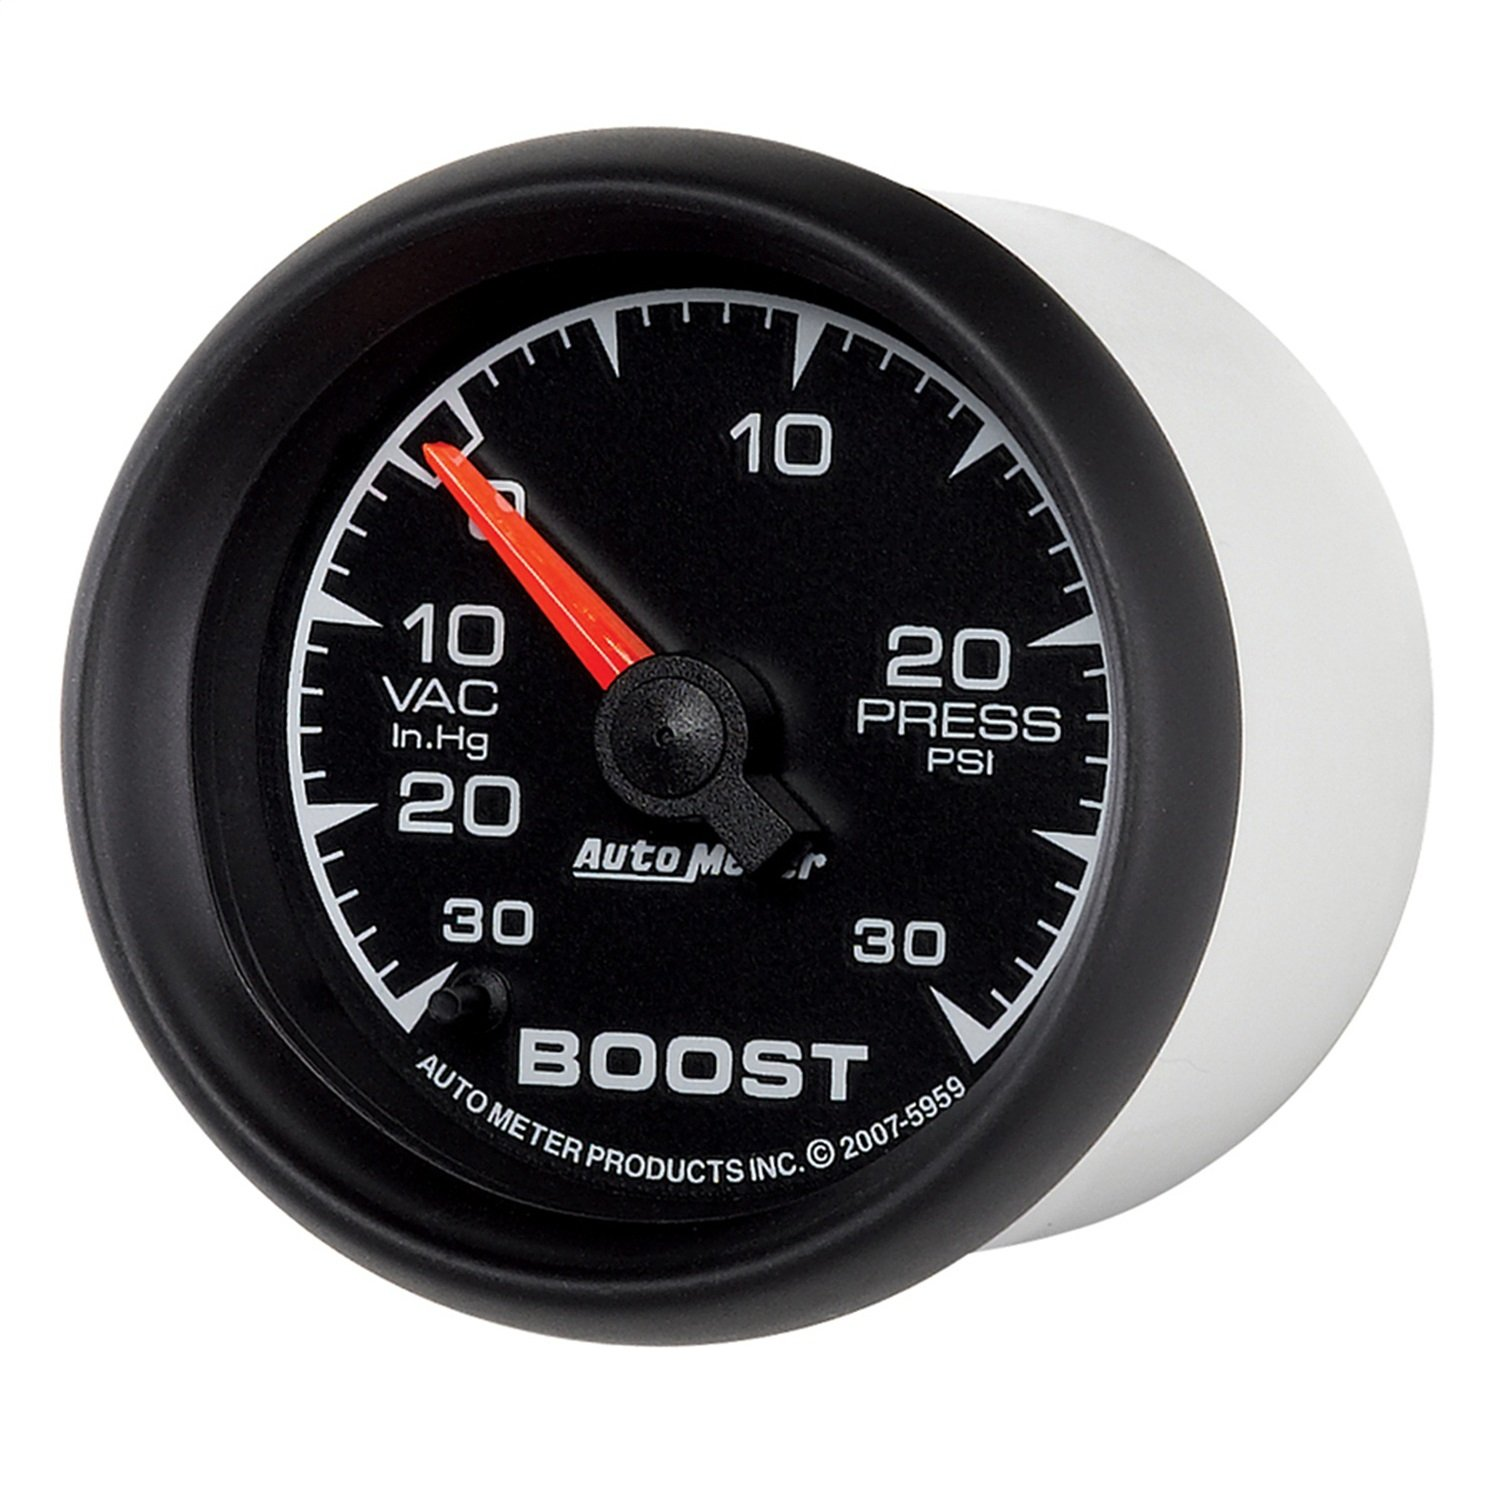 Hg//30 PSI Full Sweep Electric Vacuum//Boost Gauge Auto Meter 5959 ES 2-1//16 30 in